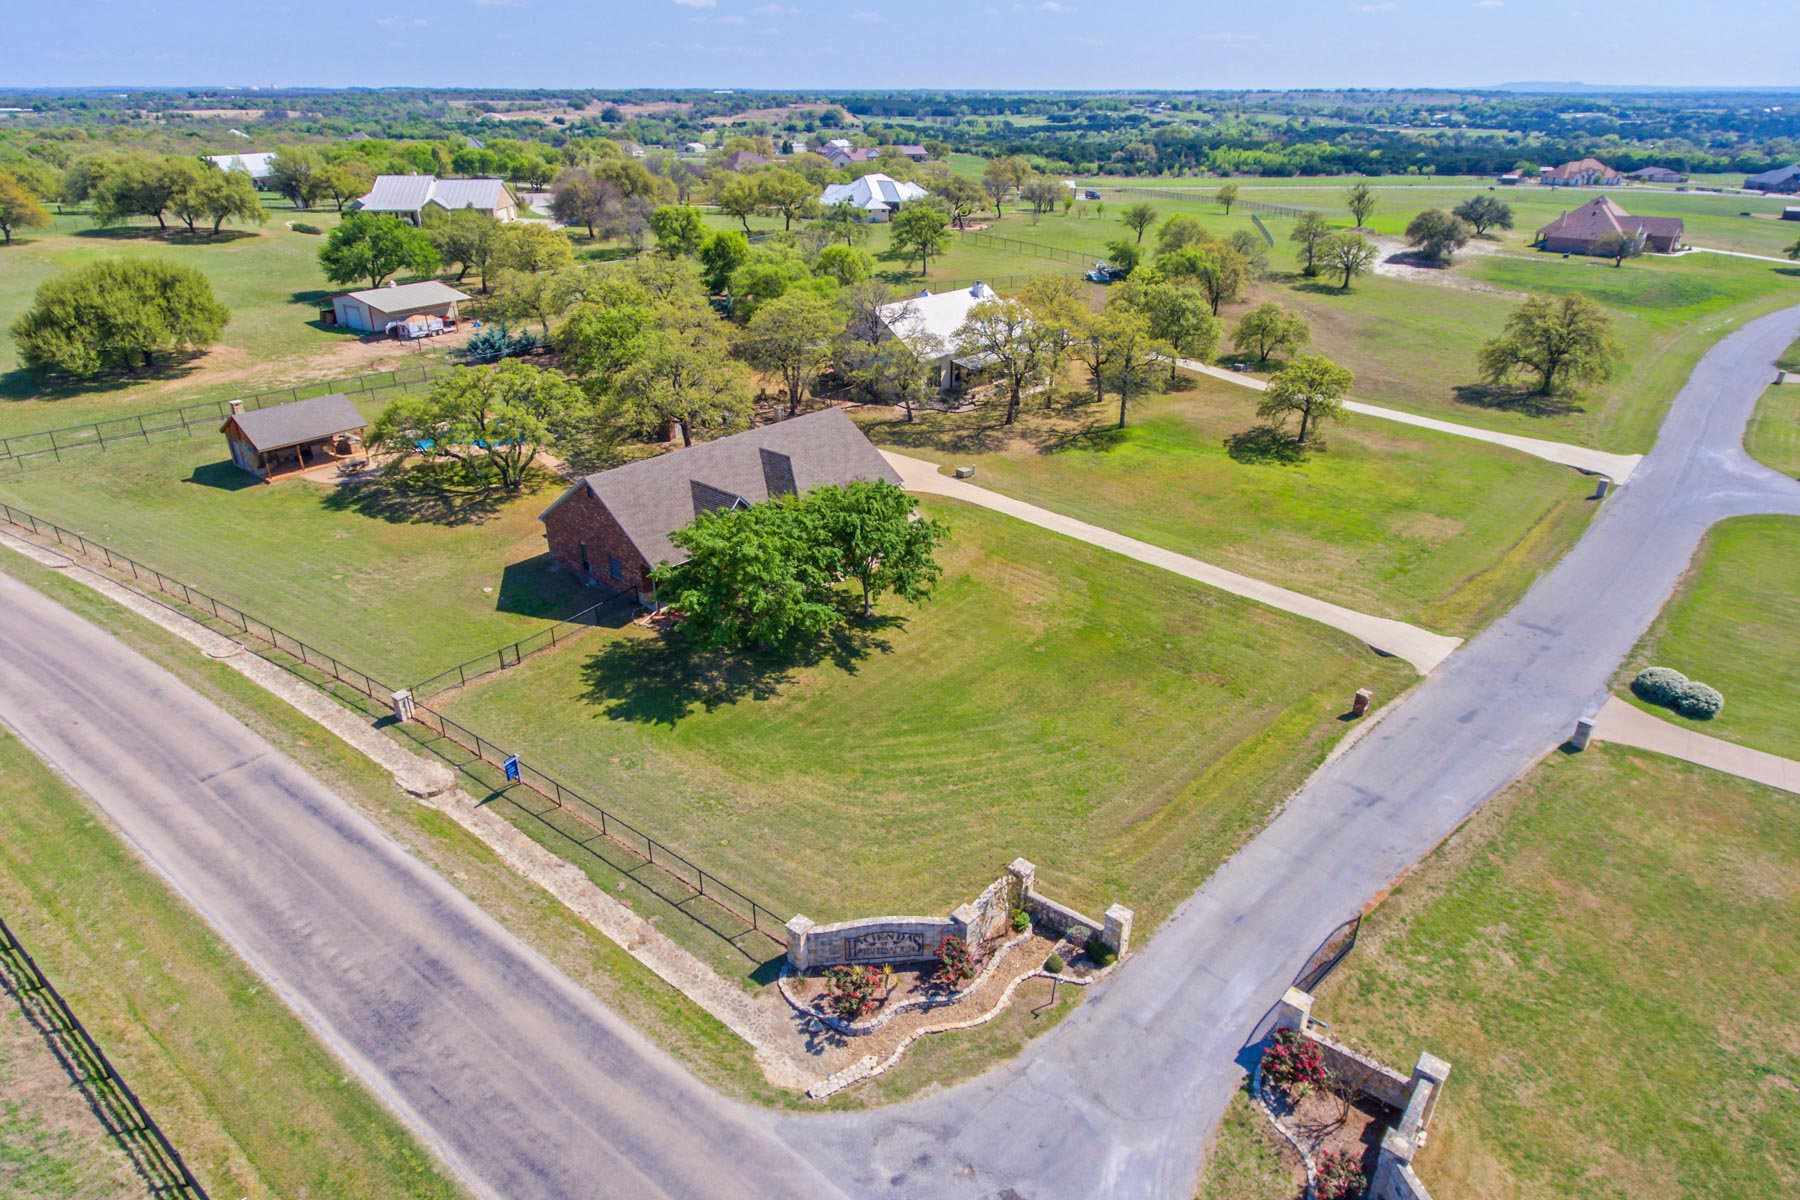 Single Family Home for Sale at 101 Trace Dr, Weatherford Weatherford, Texas 76087 United States